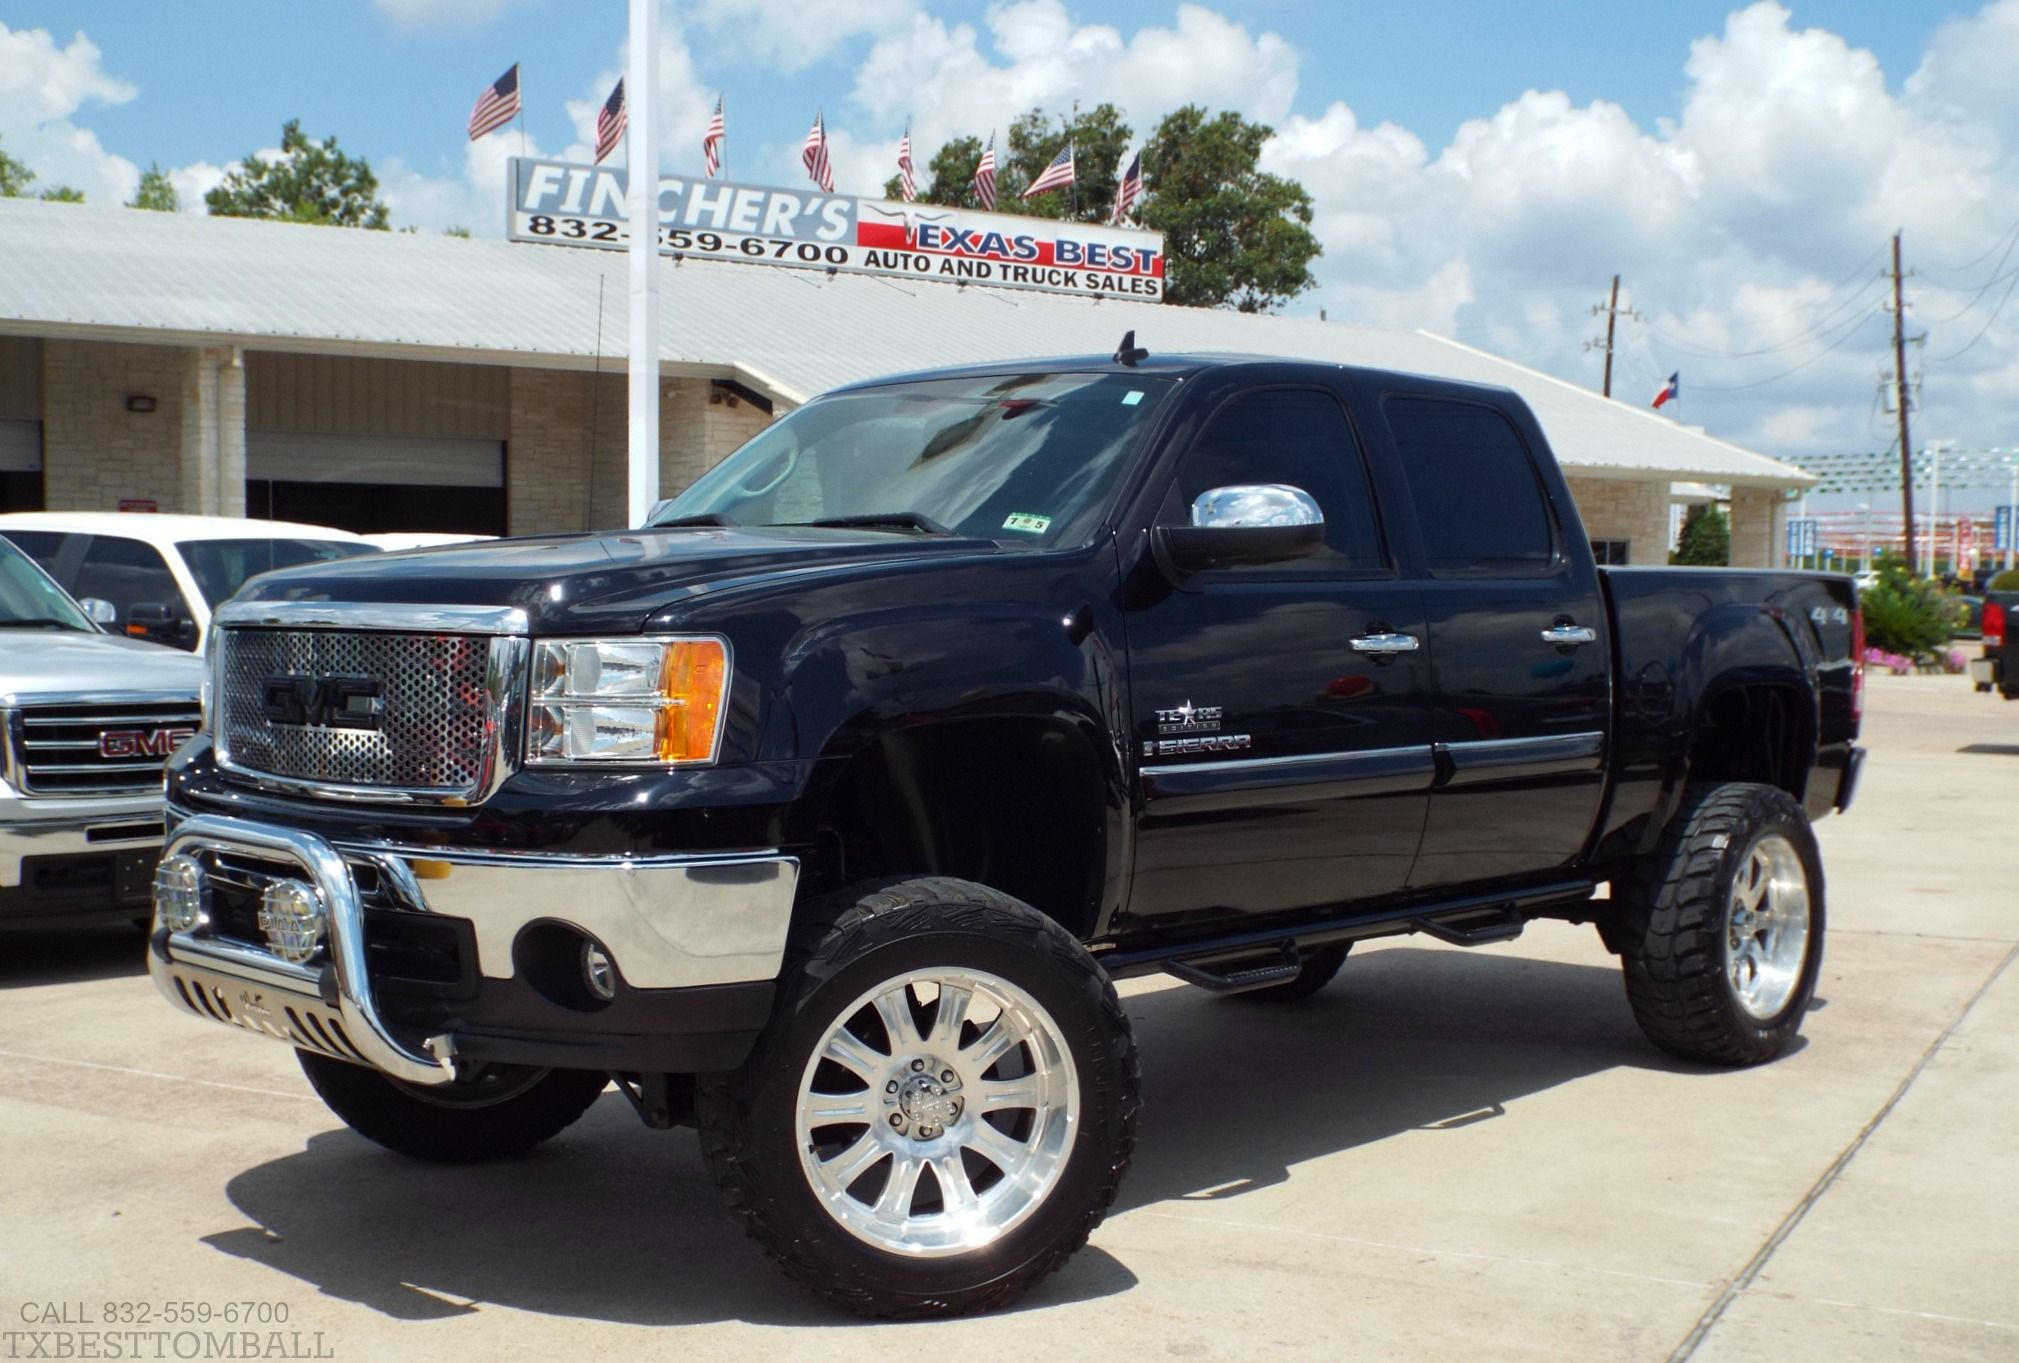 2009 GMC Sierra 1500 Crew Cab SLE 4x4 Truck for sale ly